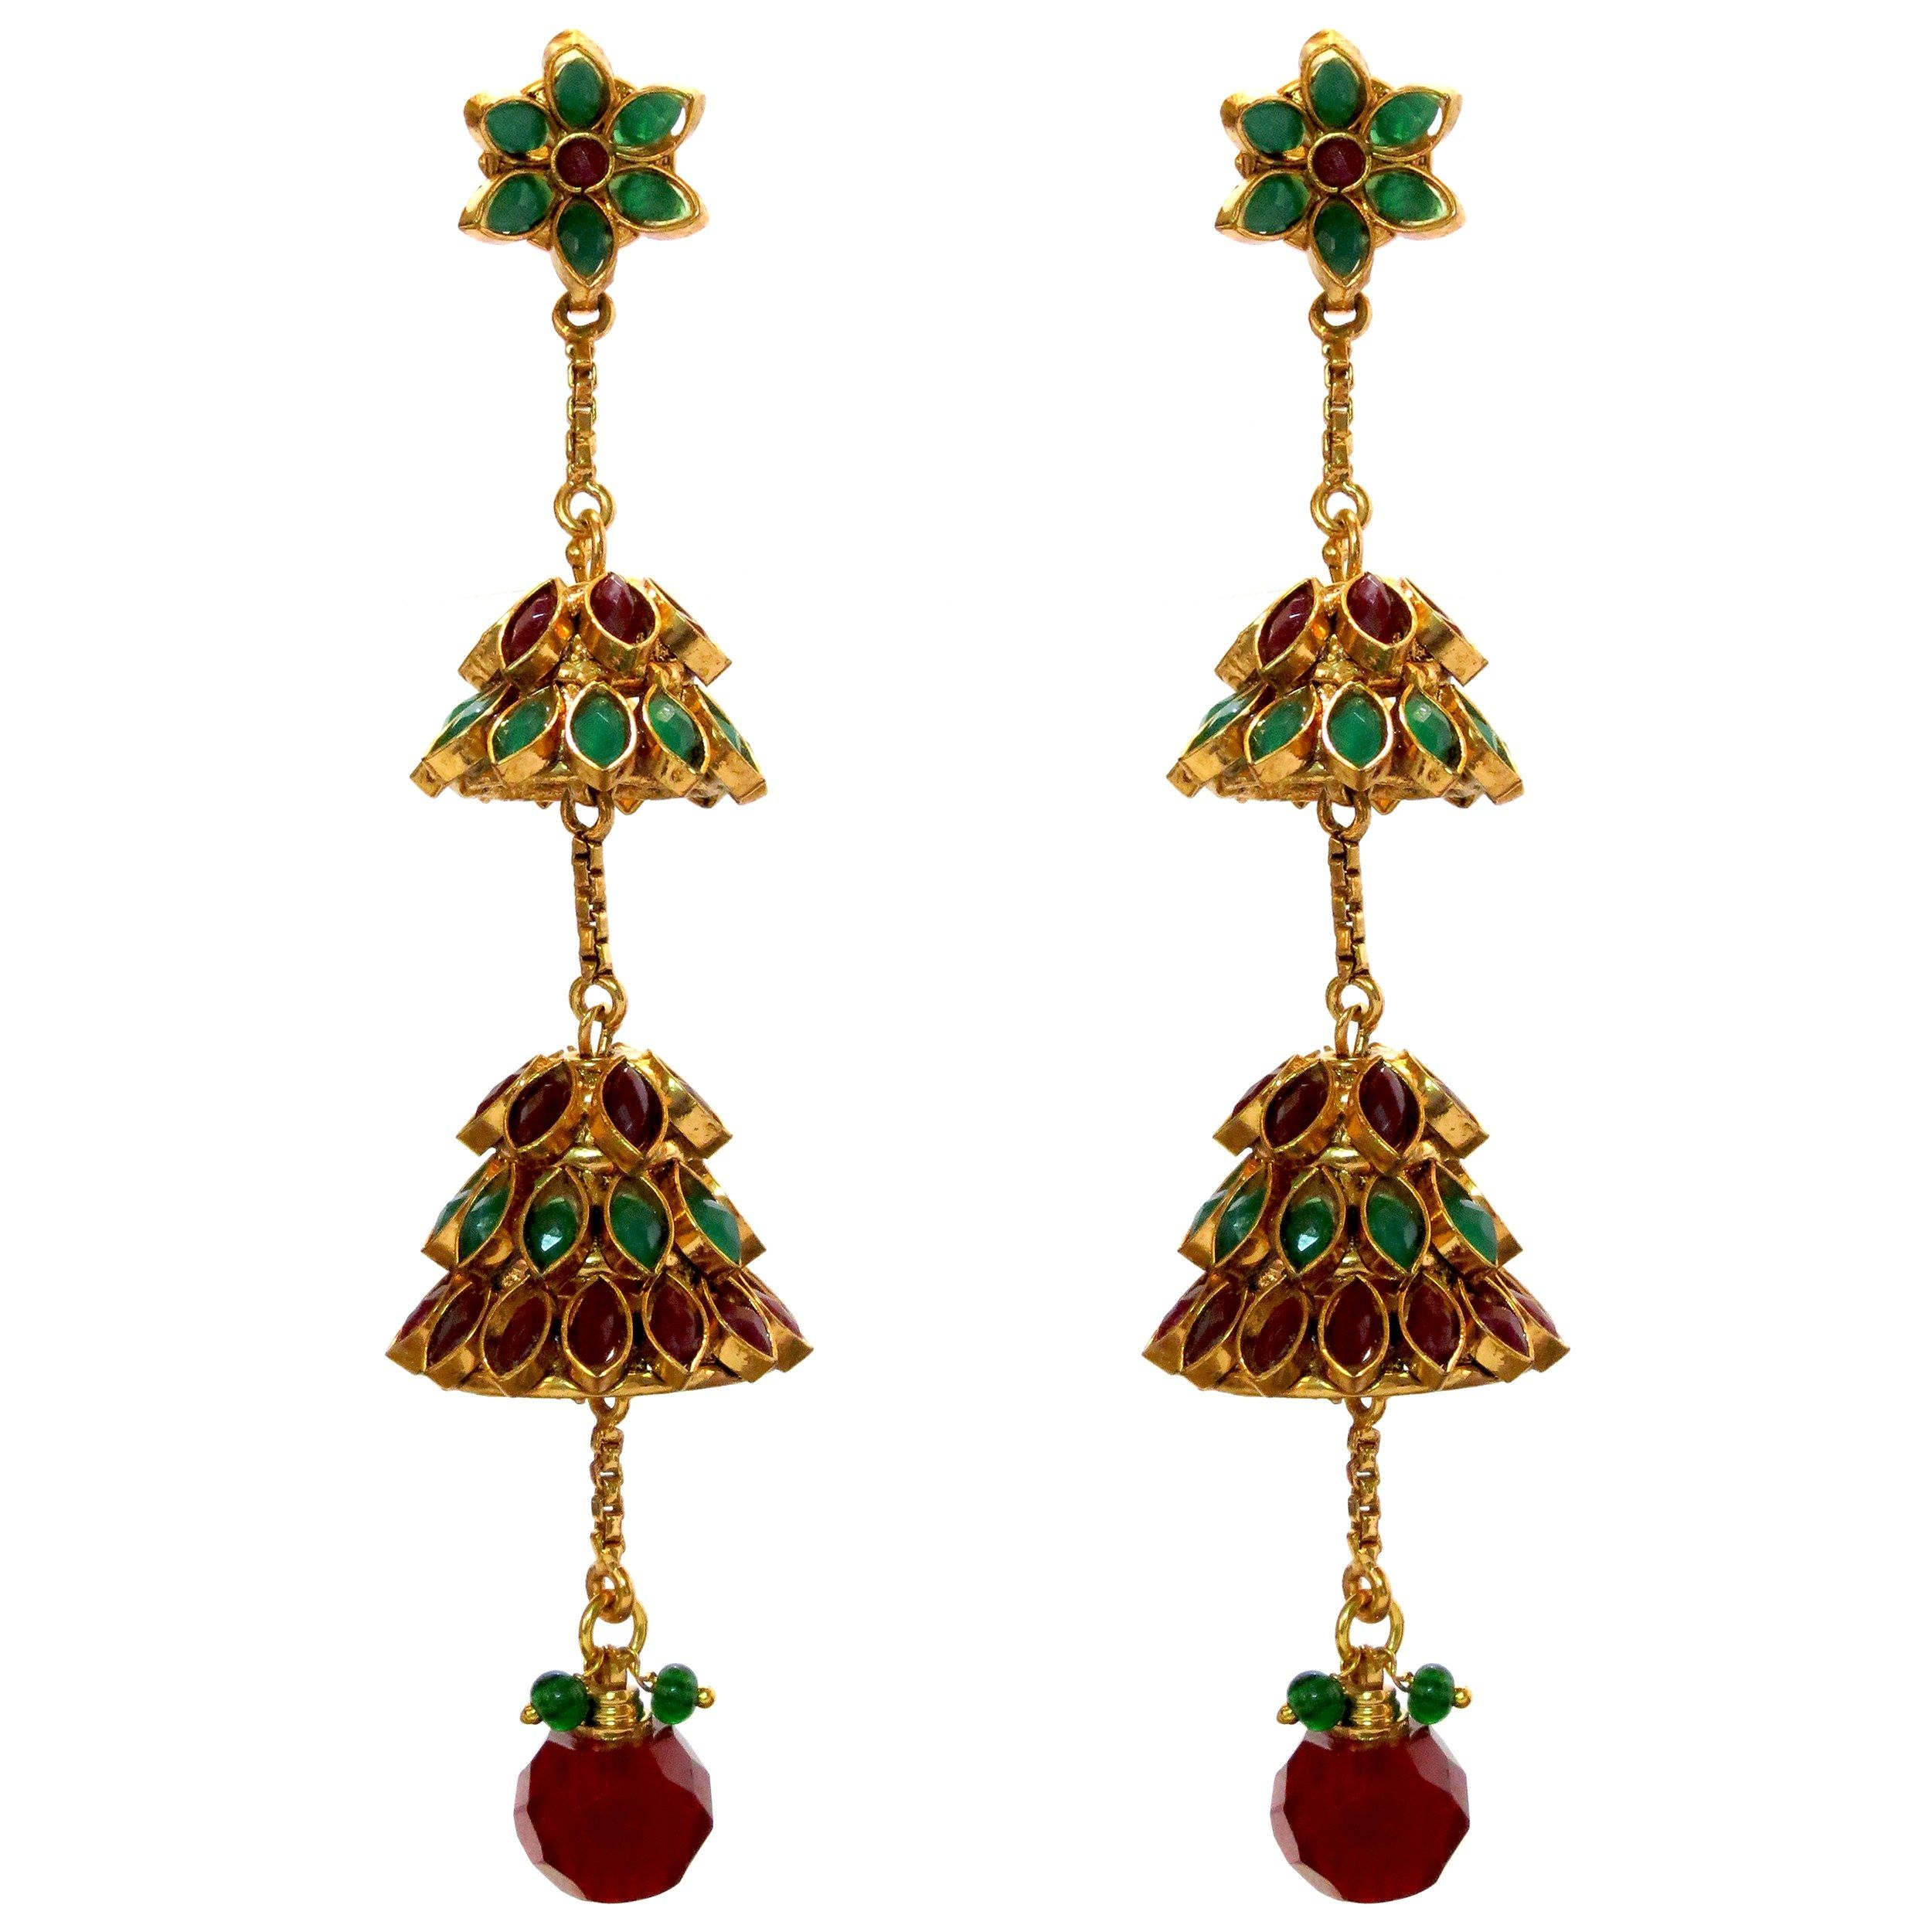 Scintillating Pair Of Jhumki Earrings With pachi work